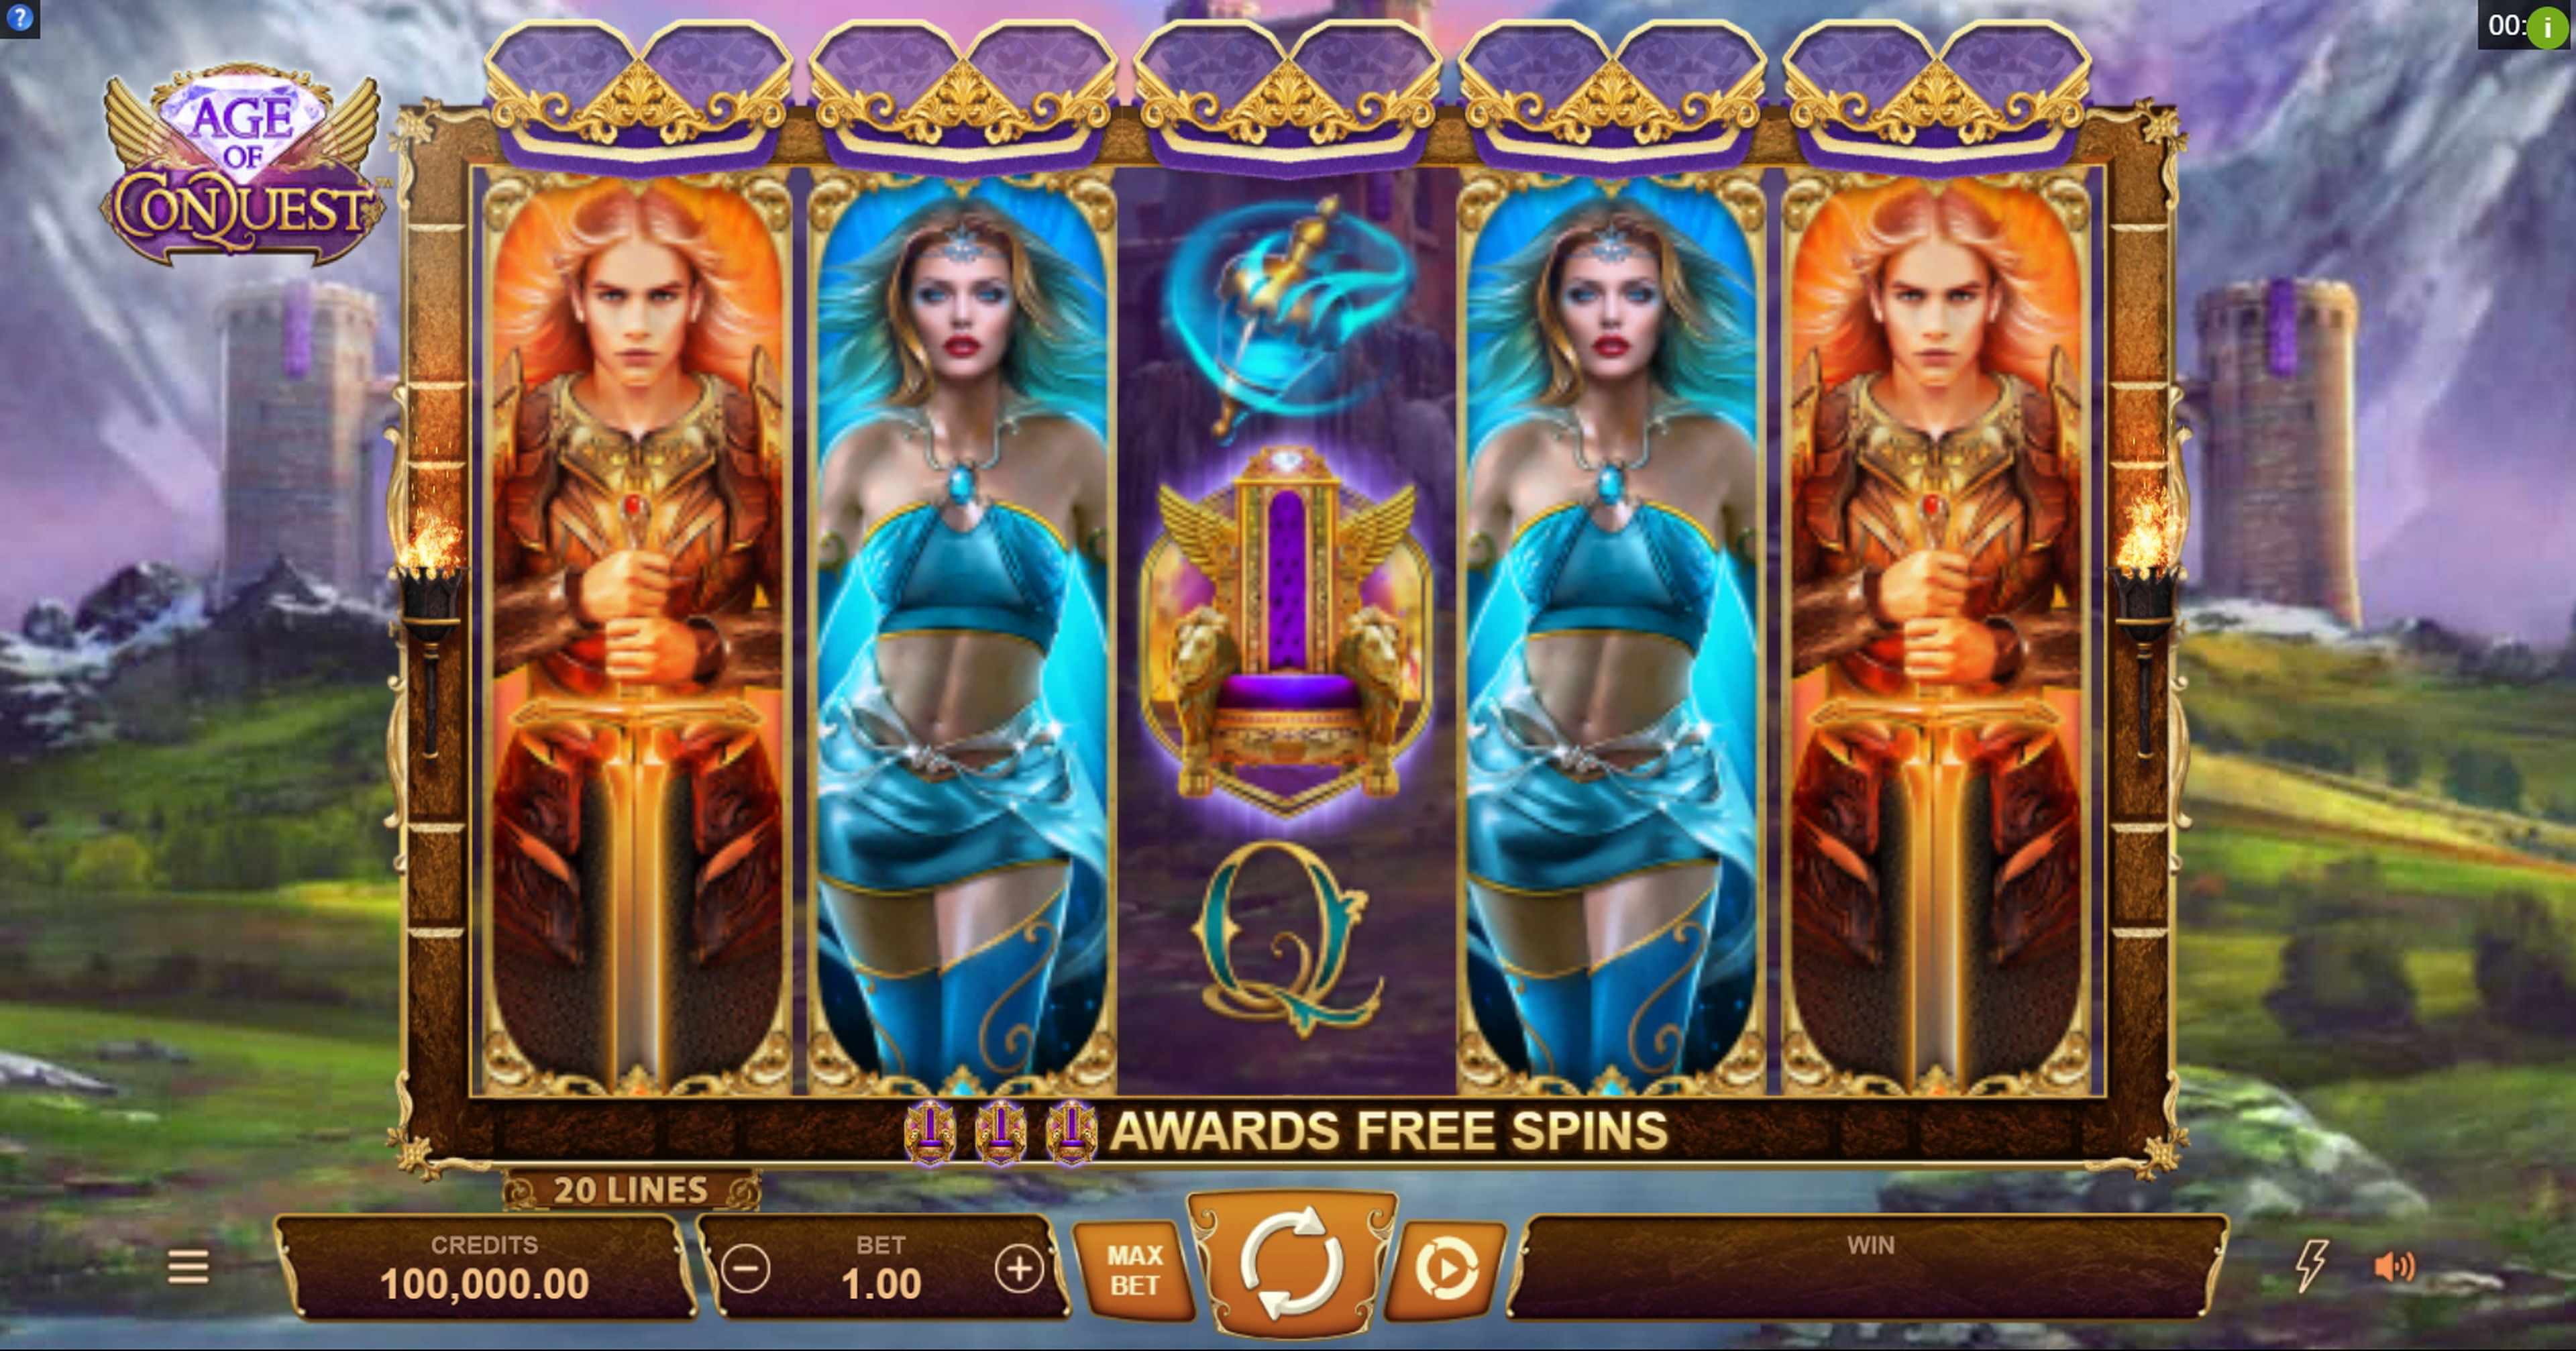 Reels in Age of Conquest Slot Game by Neon Valley Studios